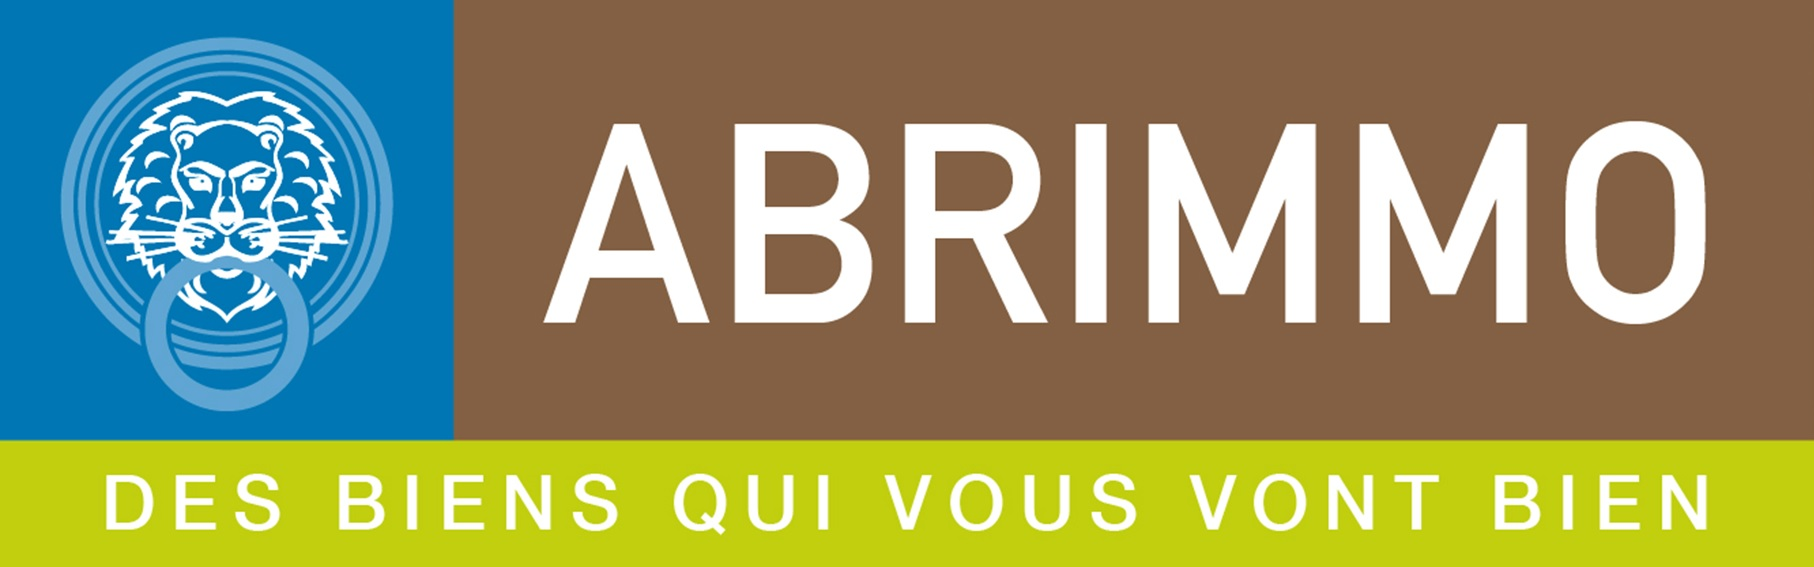 ABRIMMO LILLE agence immobilière Lille (59000)